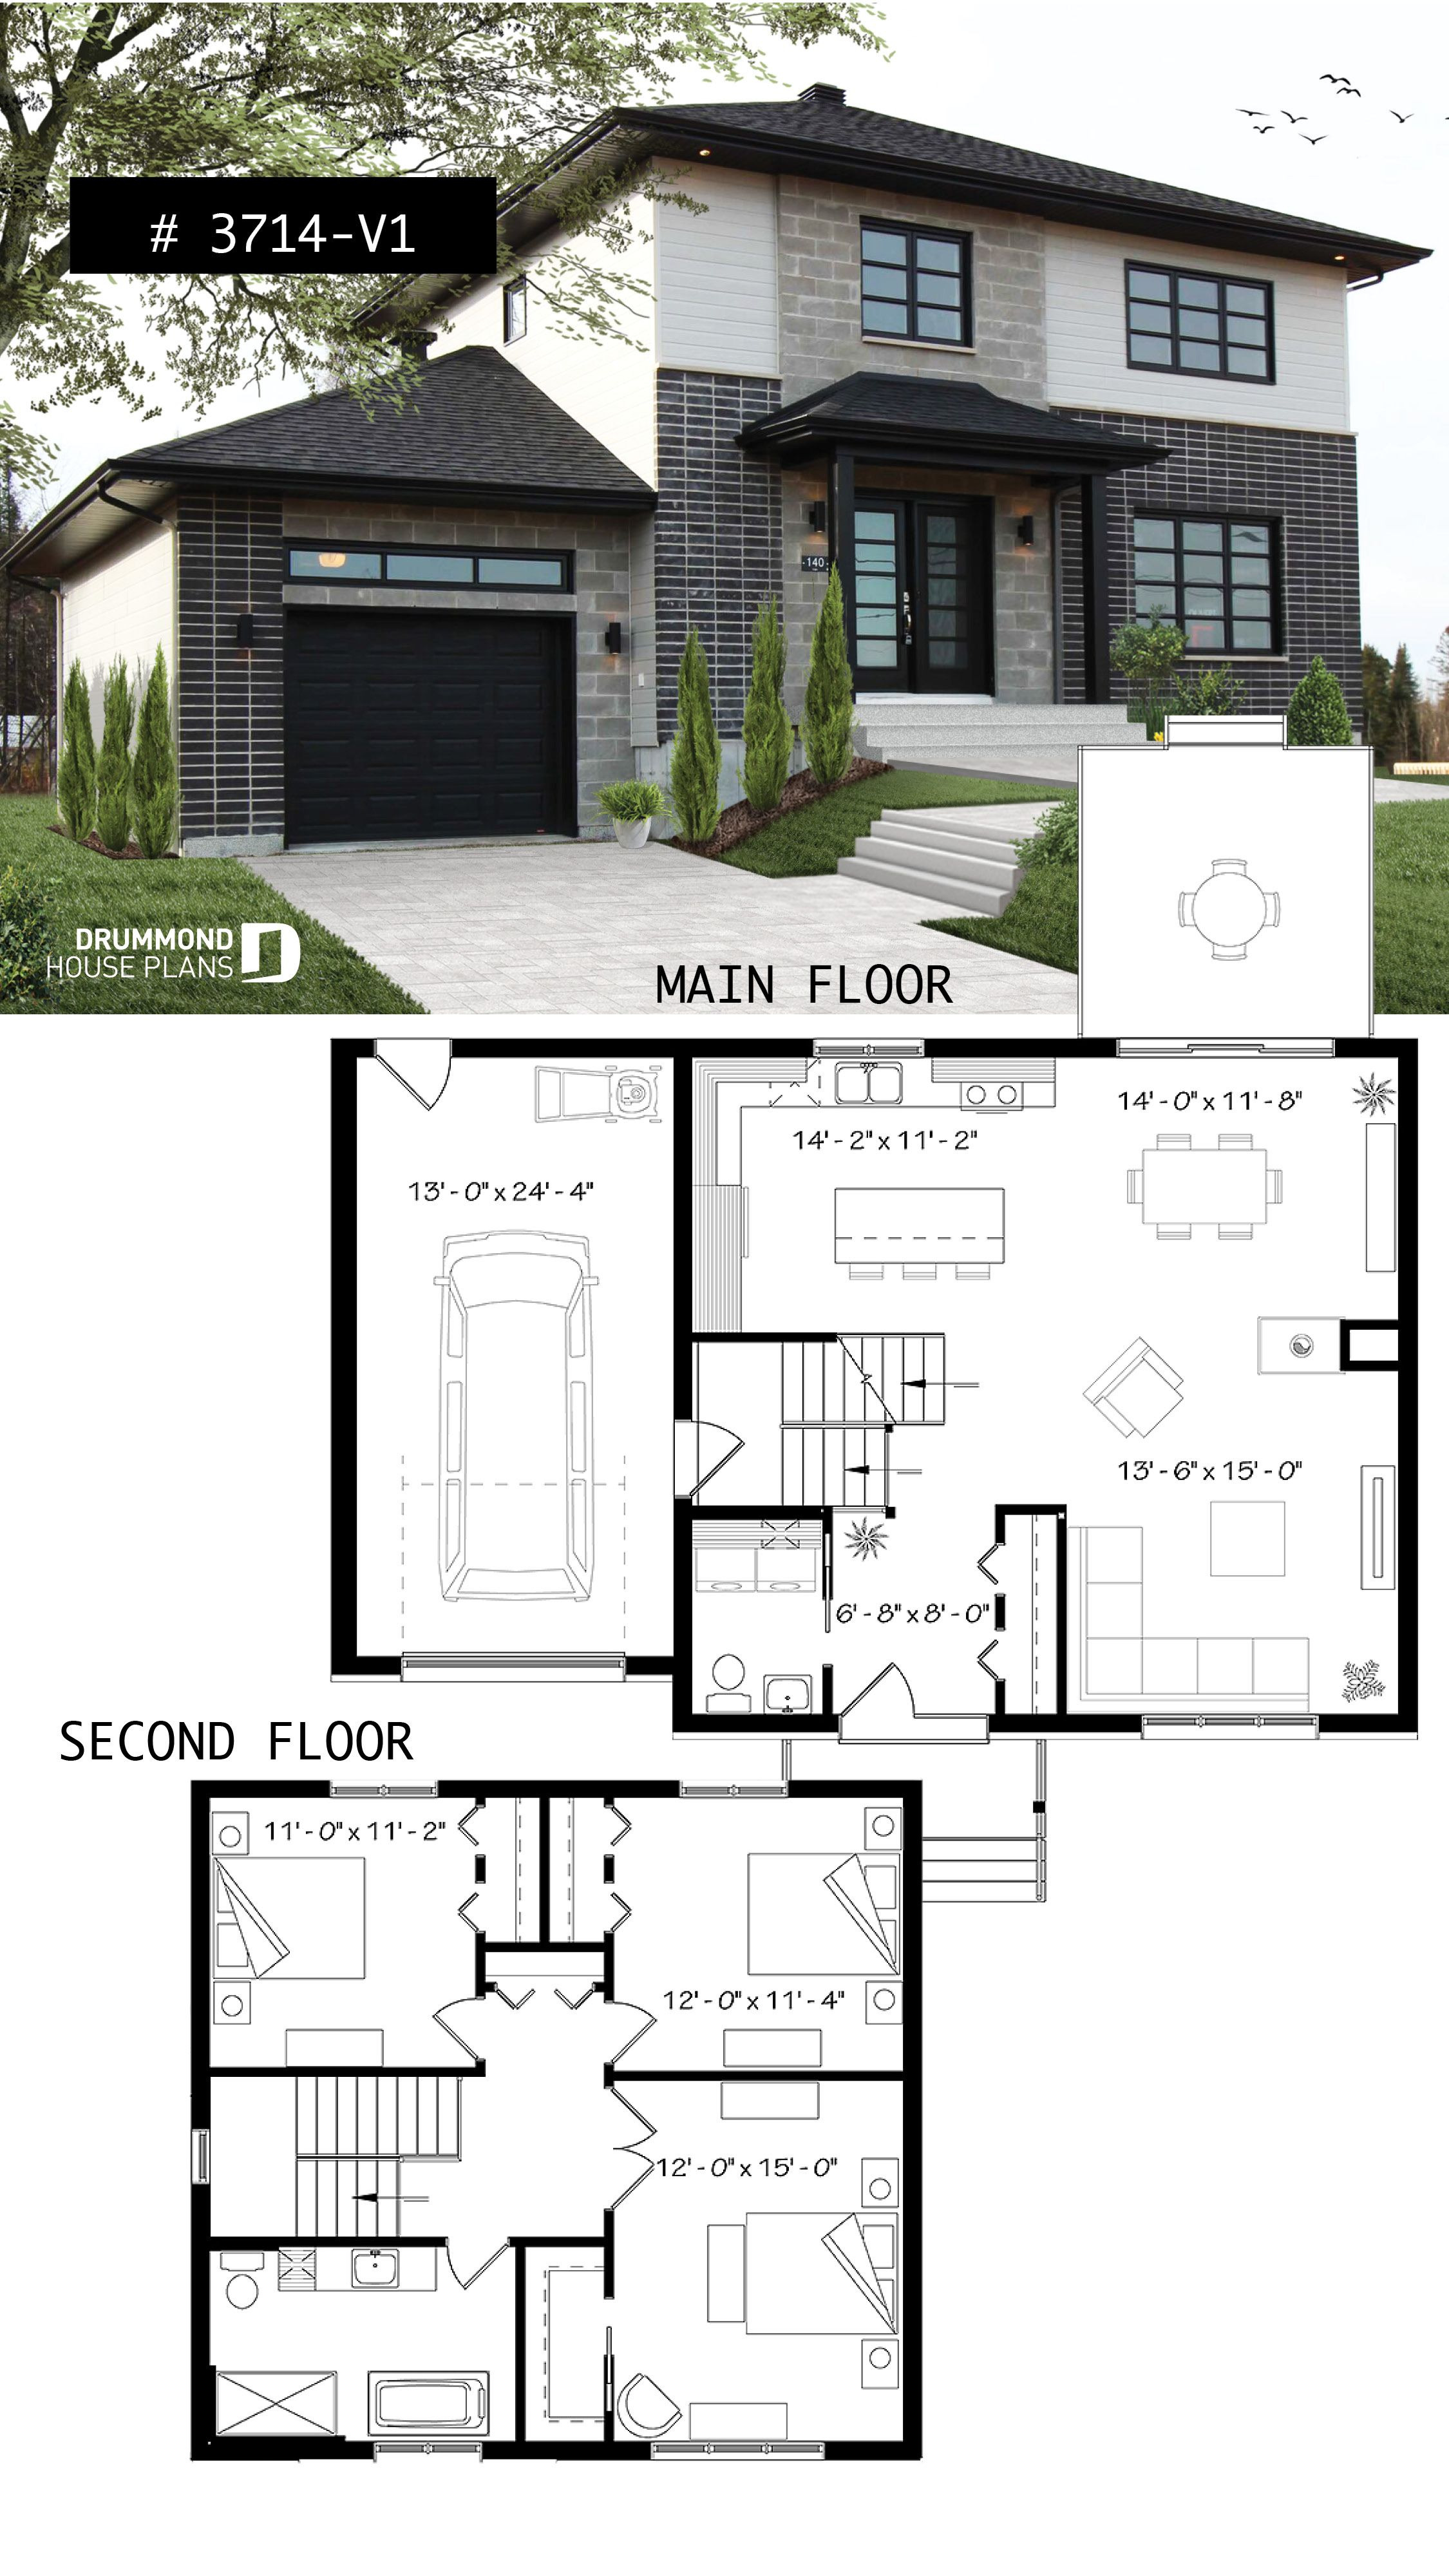 Small 2 Story House Plans Lovely House Plan Altair 2 No 3714 V1